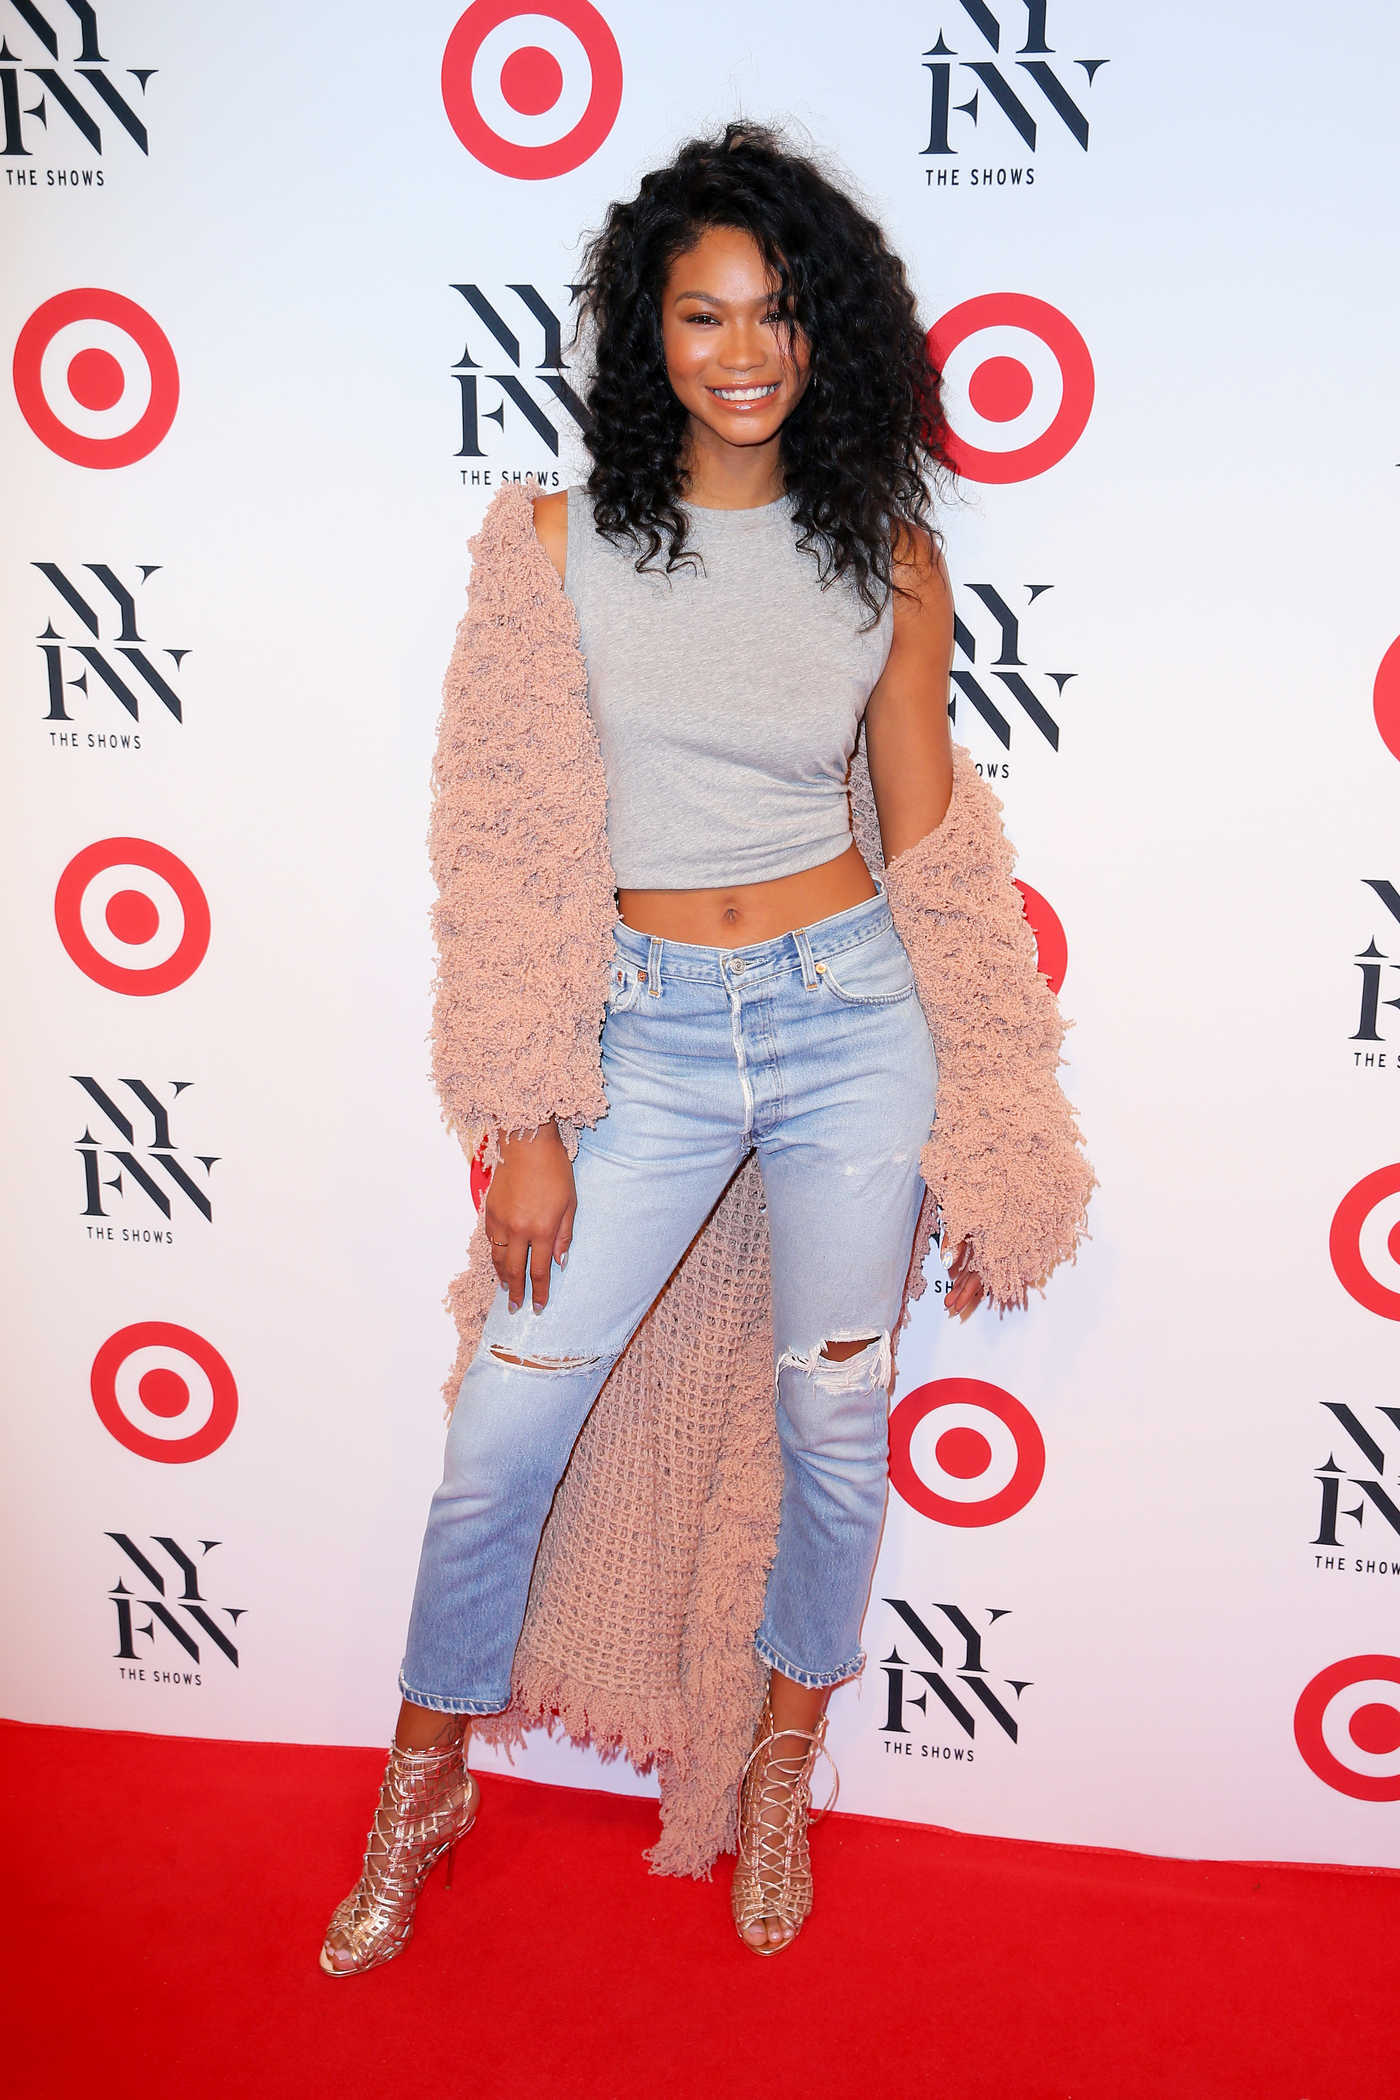 Chanel Iman at the Target + IMG NYFW Kickoff Event at Moynihan Station in New York City 09/06/2016